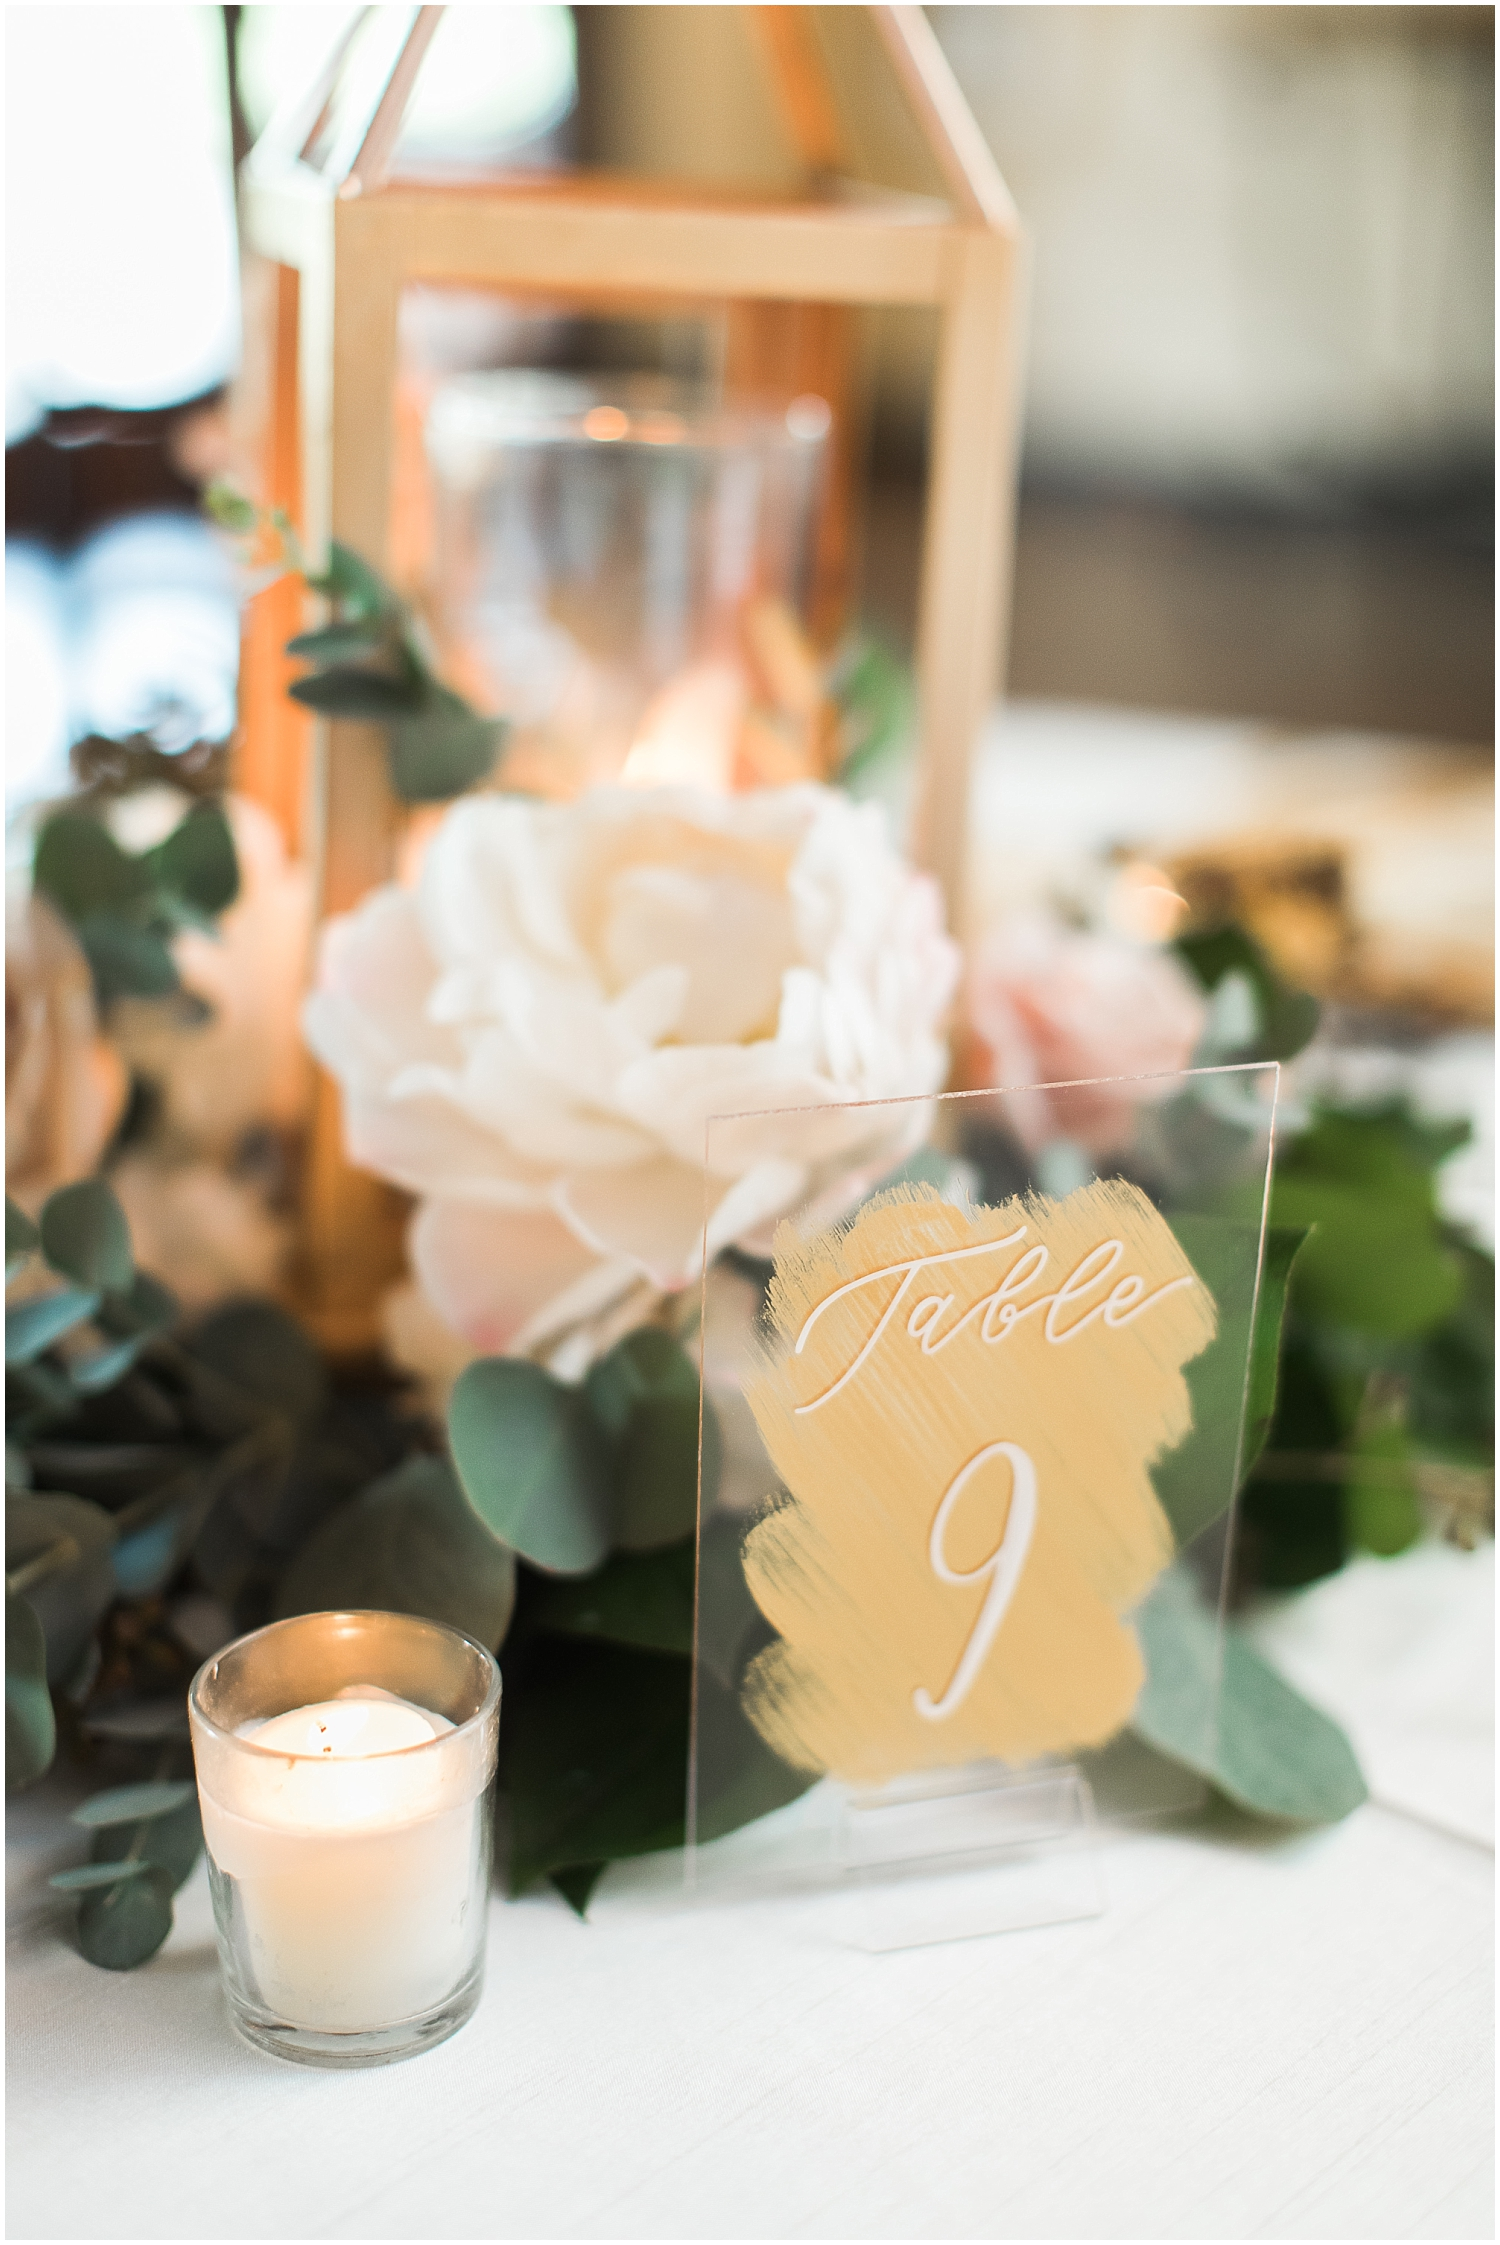 Gold lantern and table sign